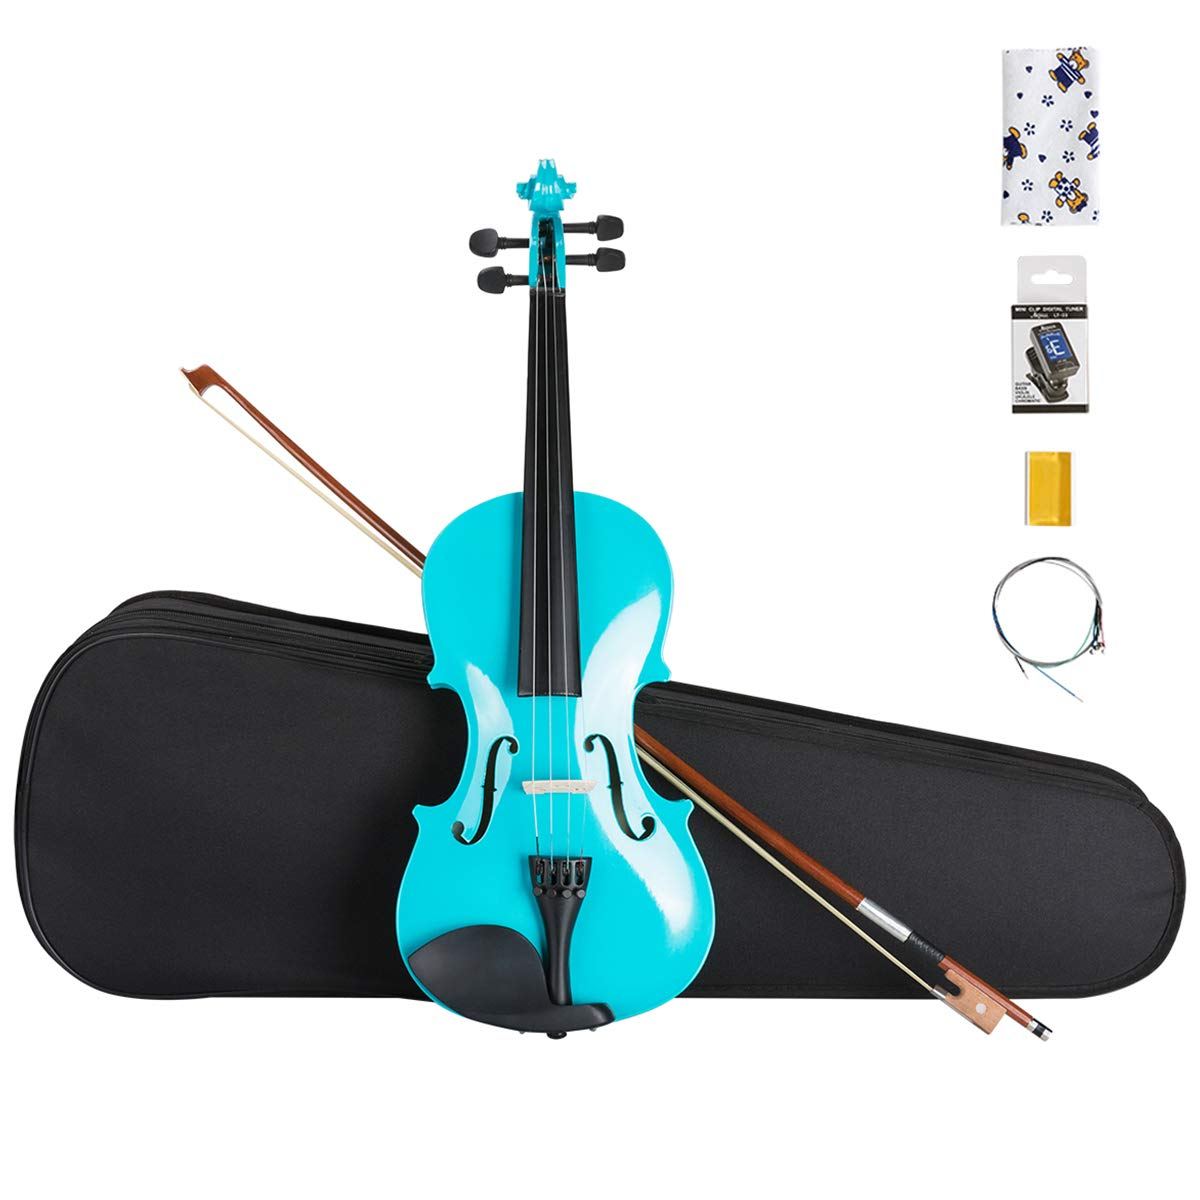 Amazon.com: ARTALL 4/4 Full Size Handcrafted Acoustic Violin Beginner Kit  for Student with Hard Case, Bow & Accessories, Glossy Blue: Musical  Instruments